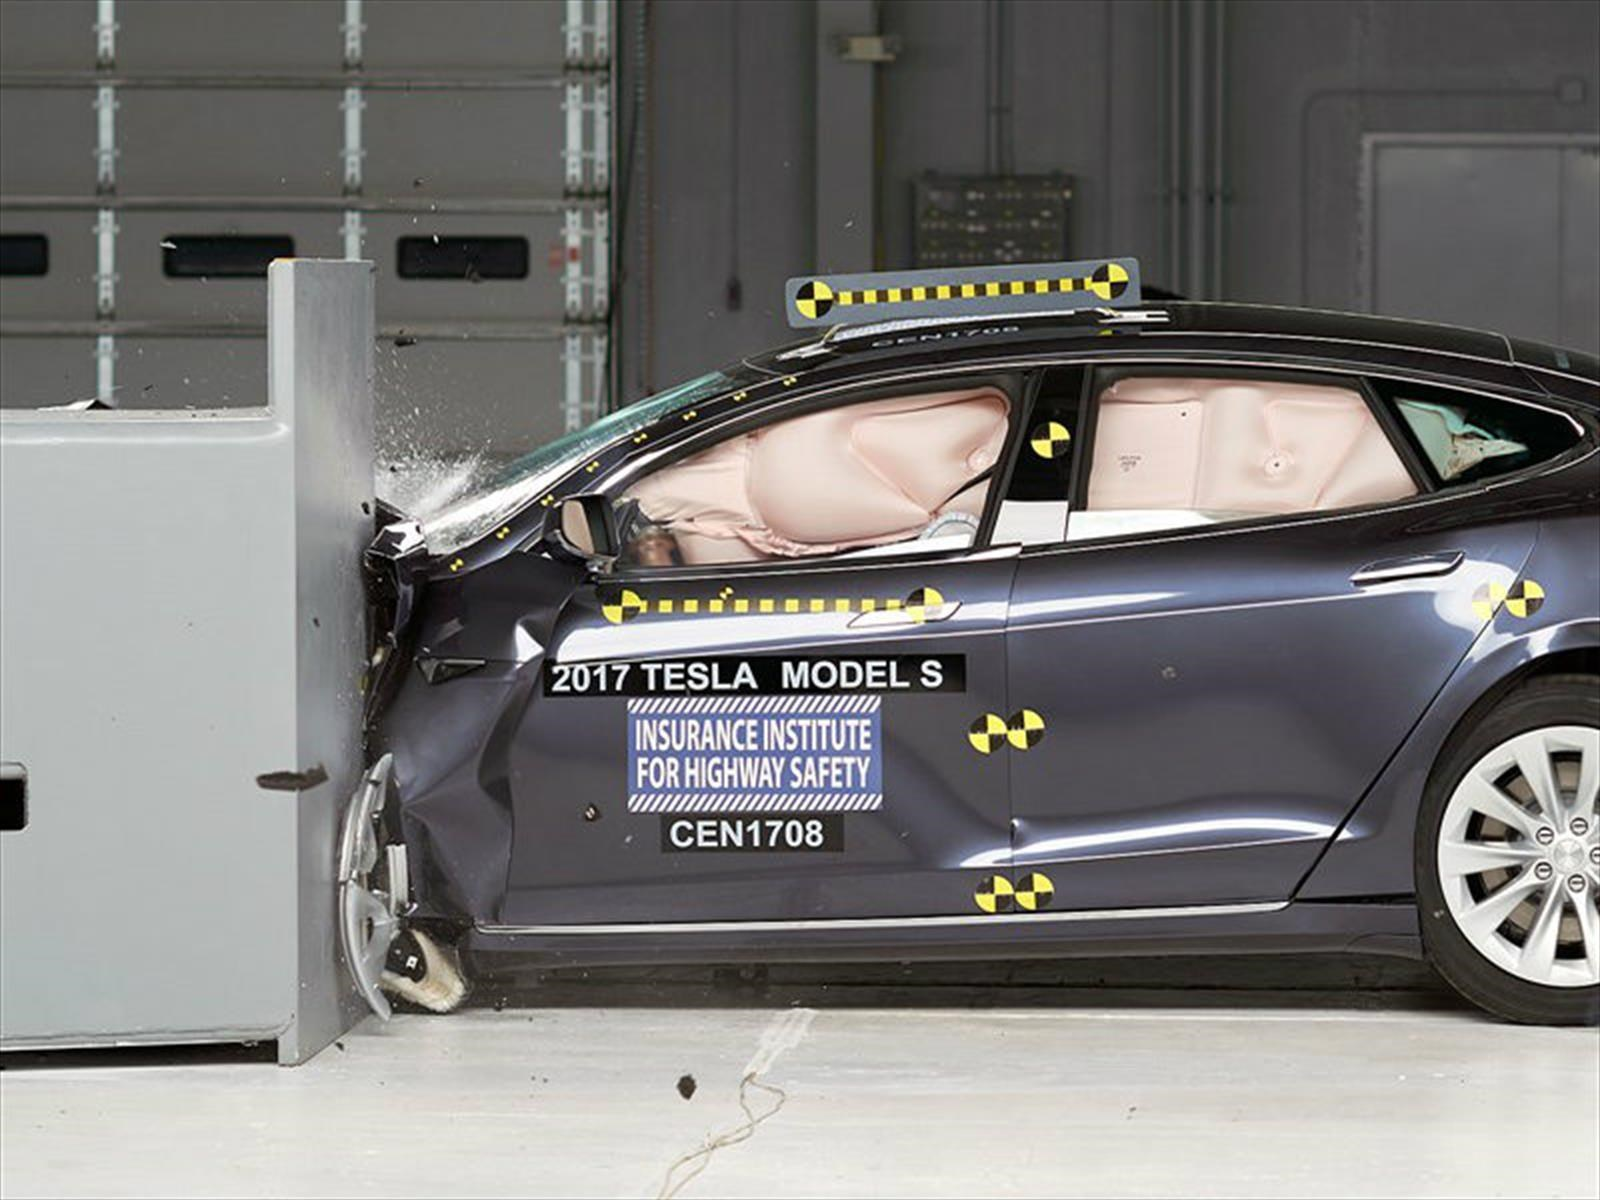 Tesla Model S no obtiene el Top Safety+ en pruebas de choque